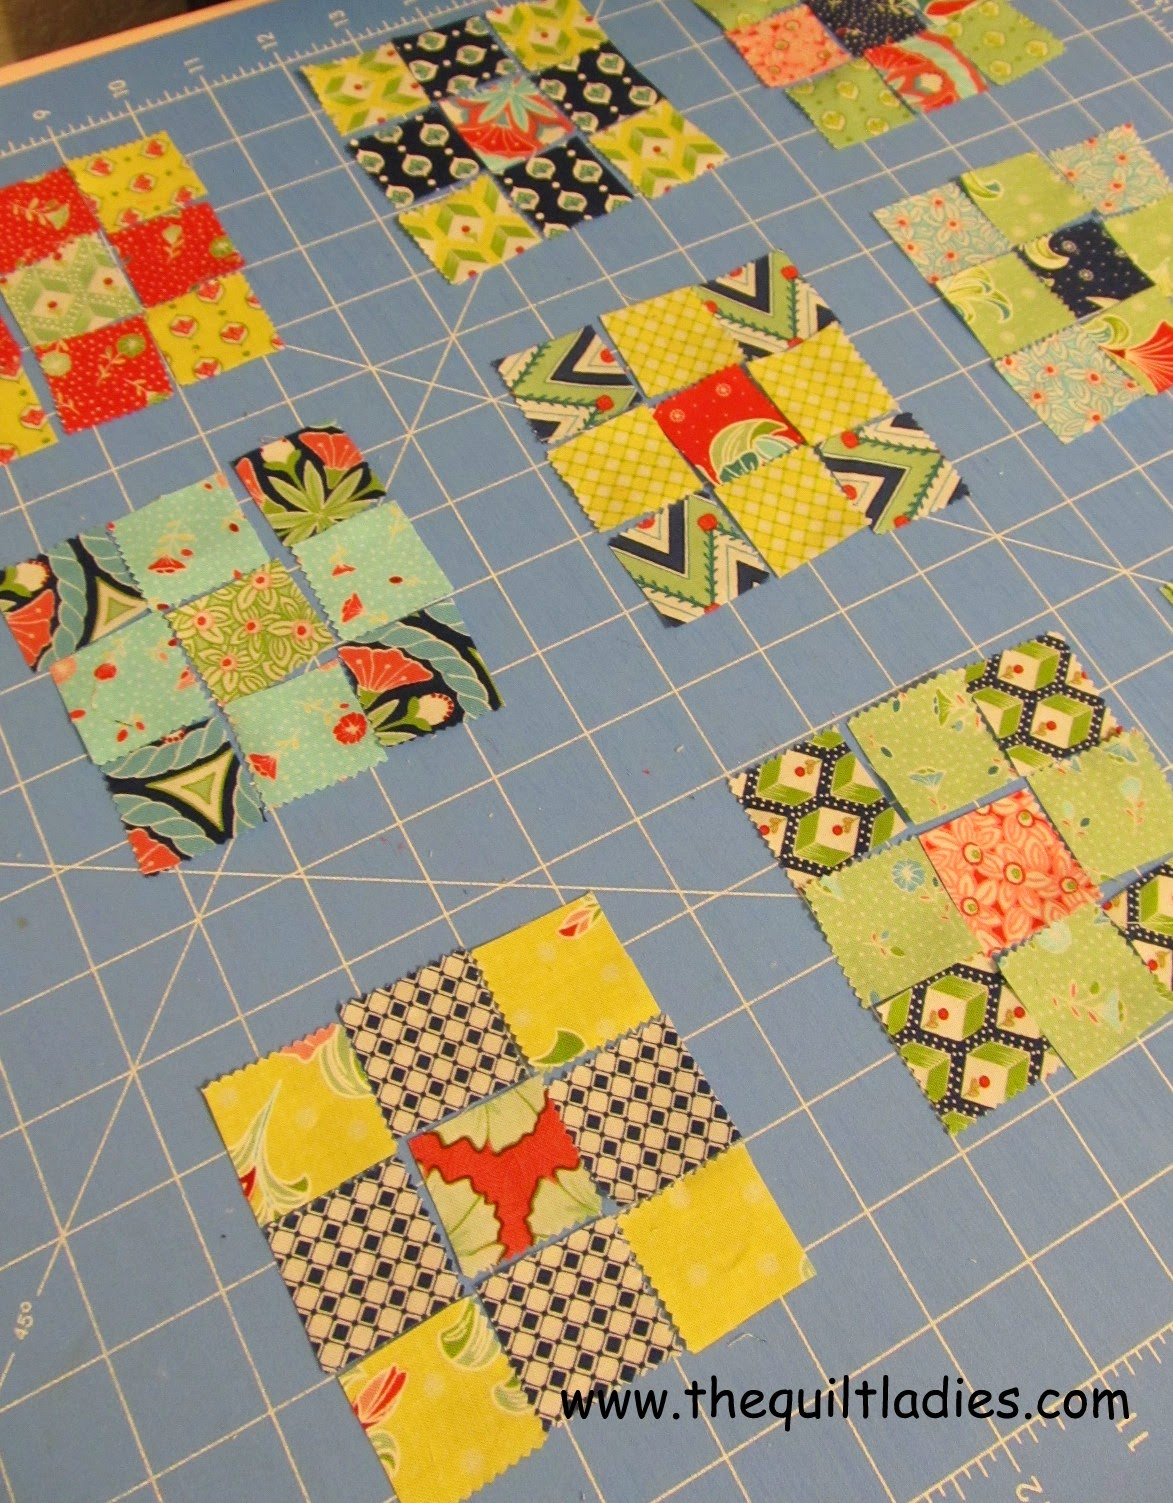 How to make a 9-Patch quilt square